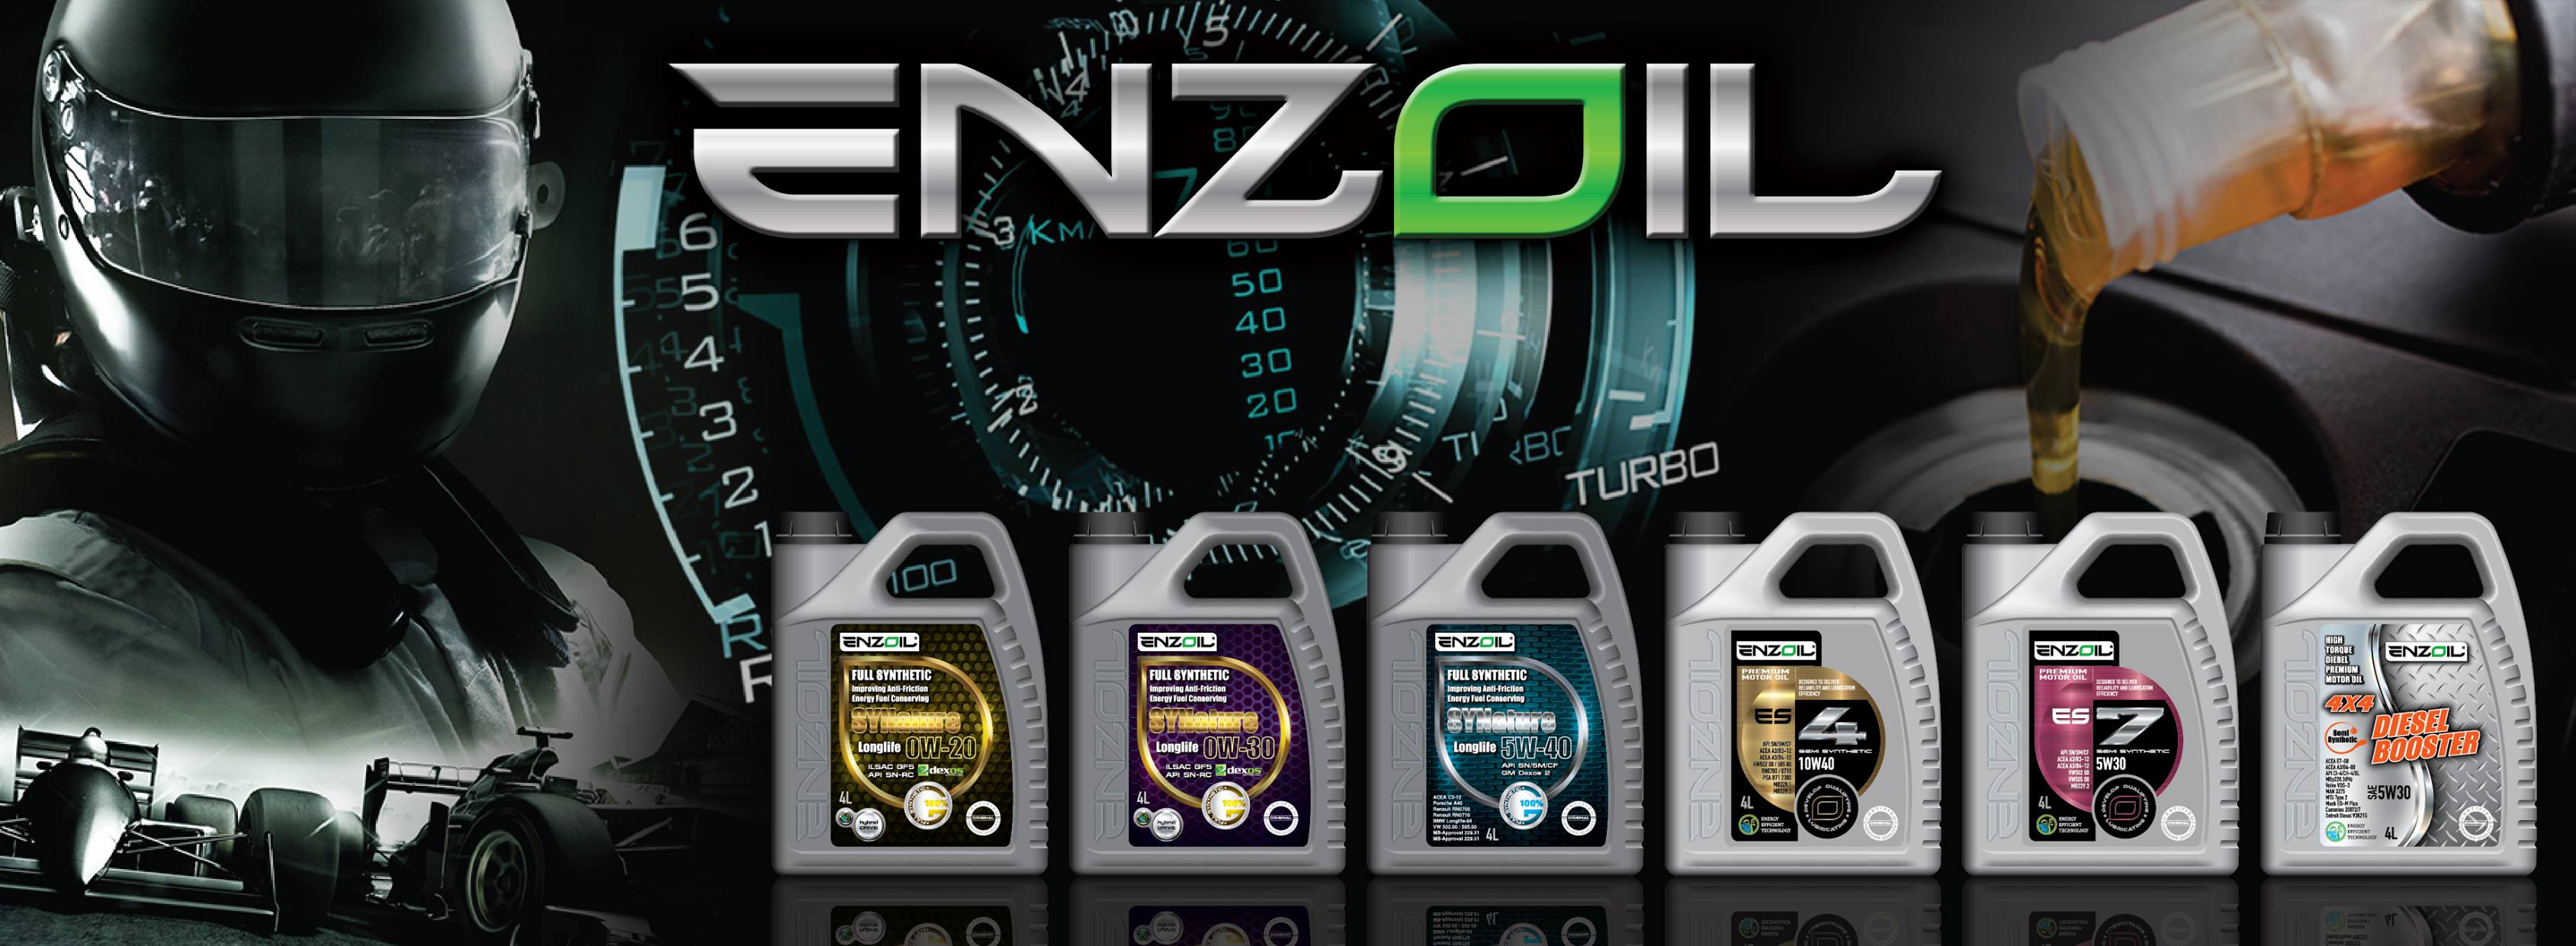 Enzoil Asia Pacific Sdn Bhd